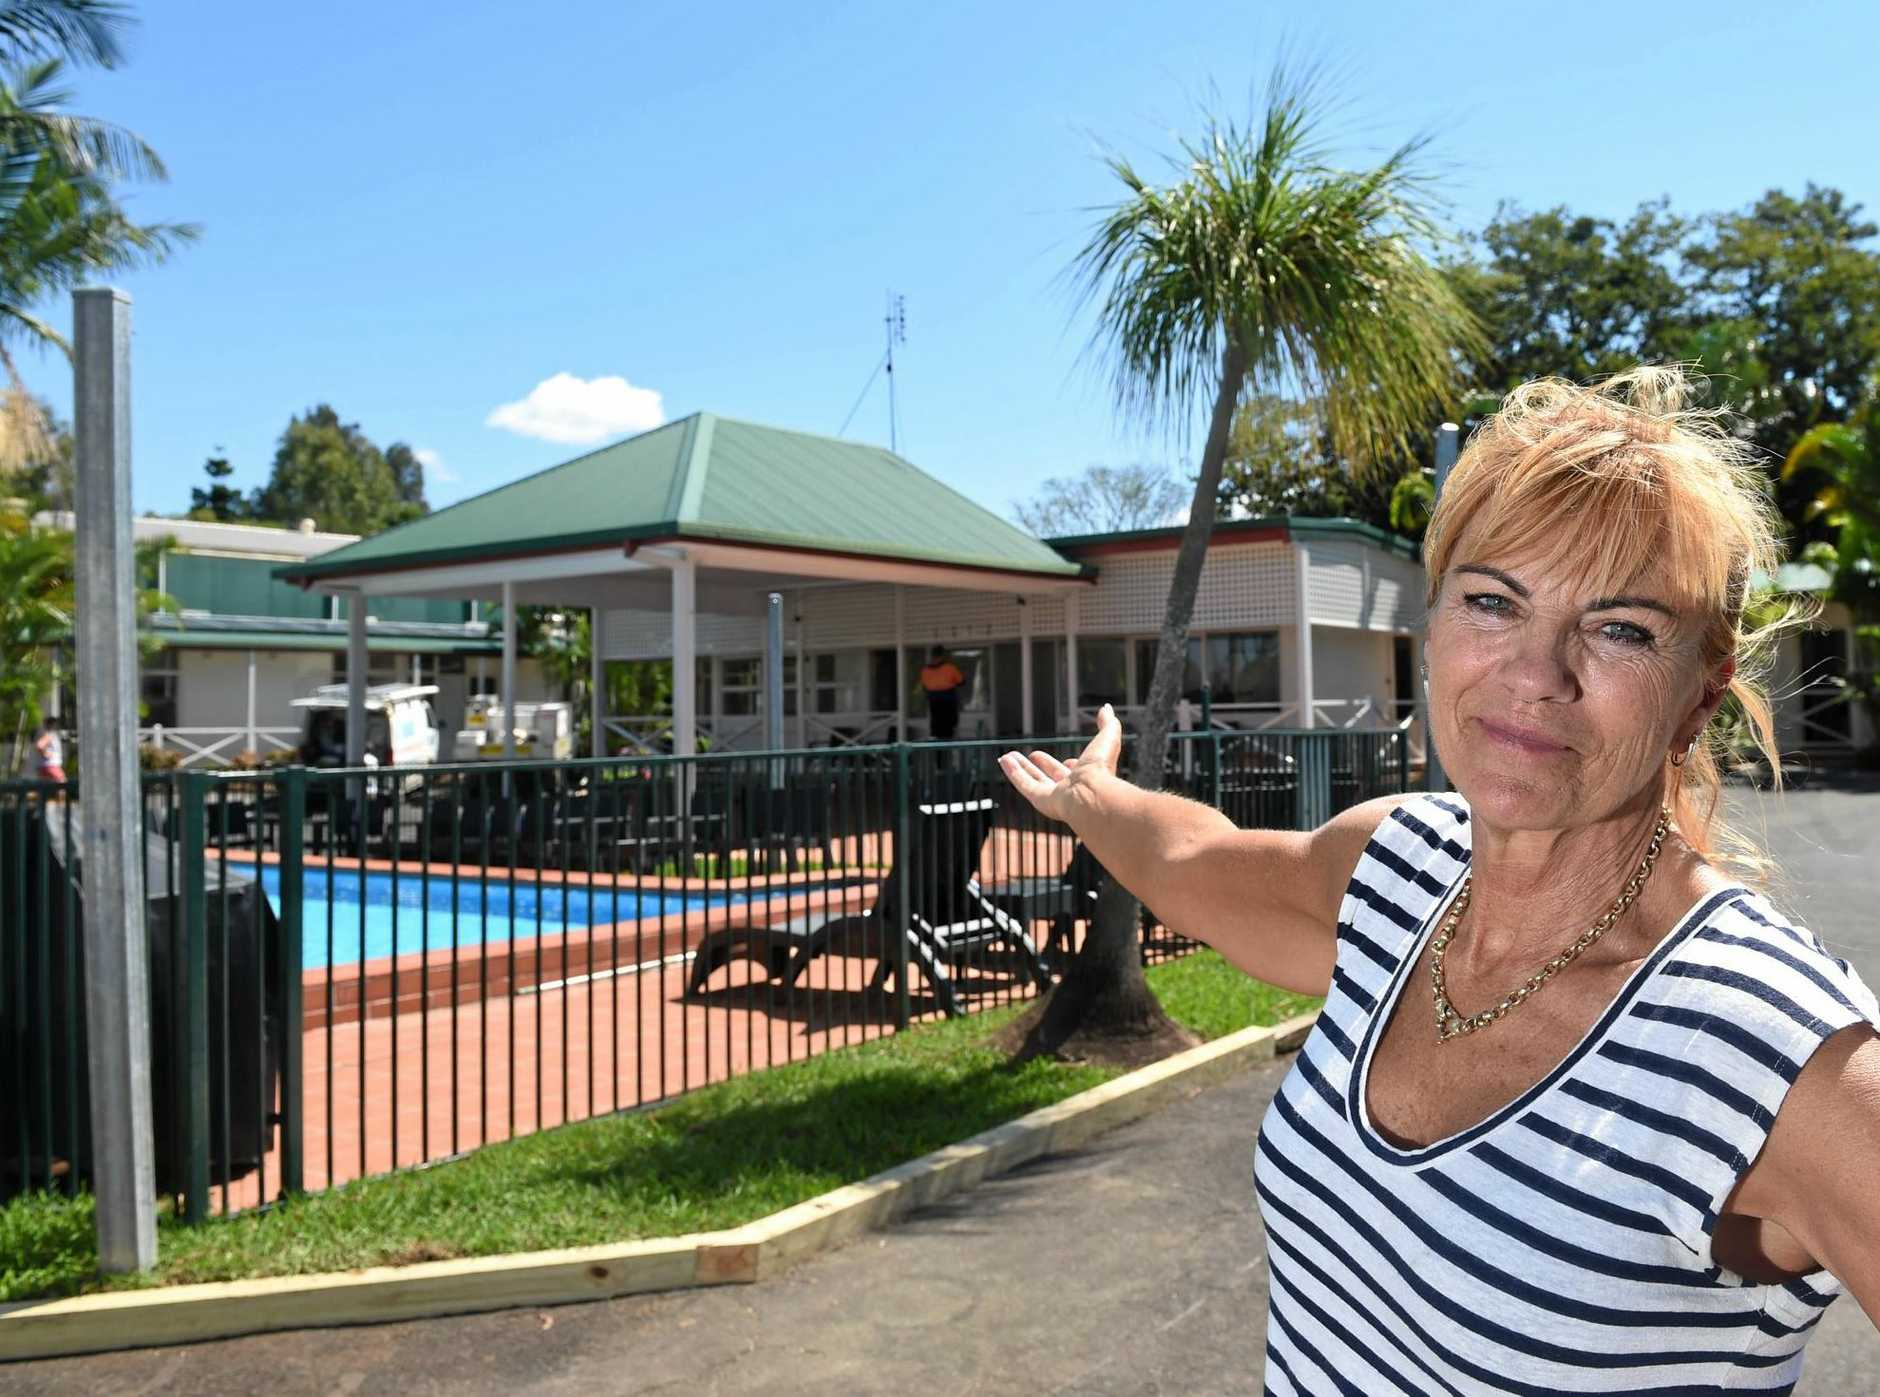 Dawson Motor Inn owner Dianne Nisner, who, with managers Wendy Johnson and Jo Bussell, have been putting the final touches on the inn's renovations after the flood.